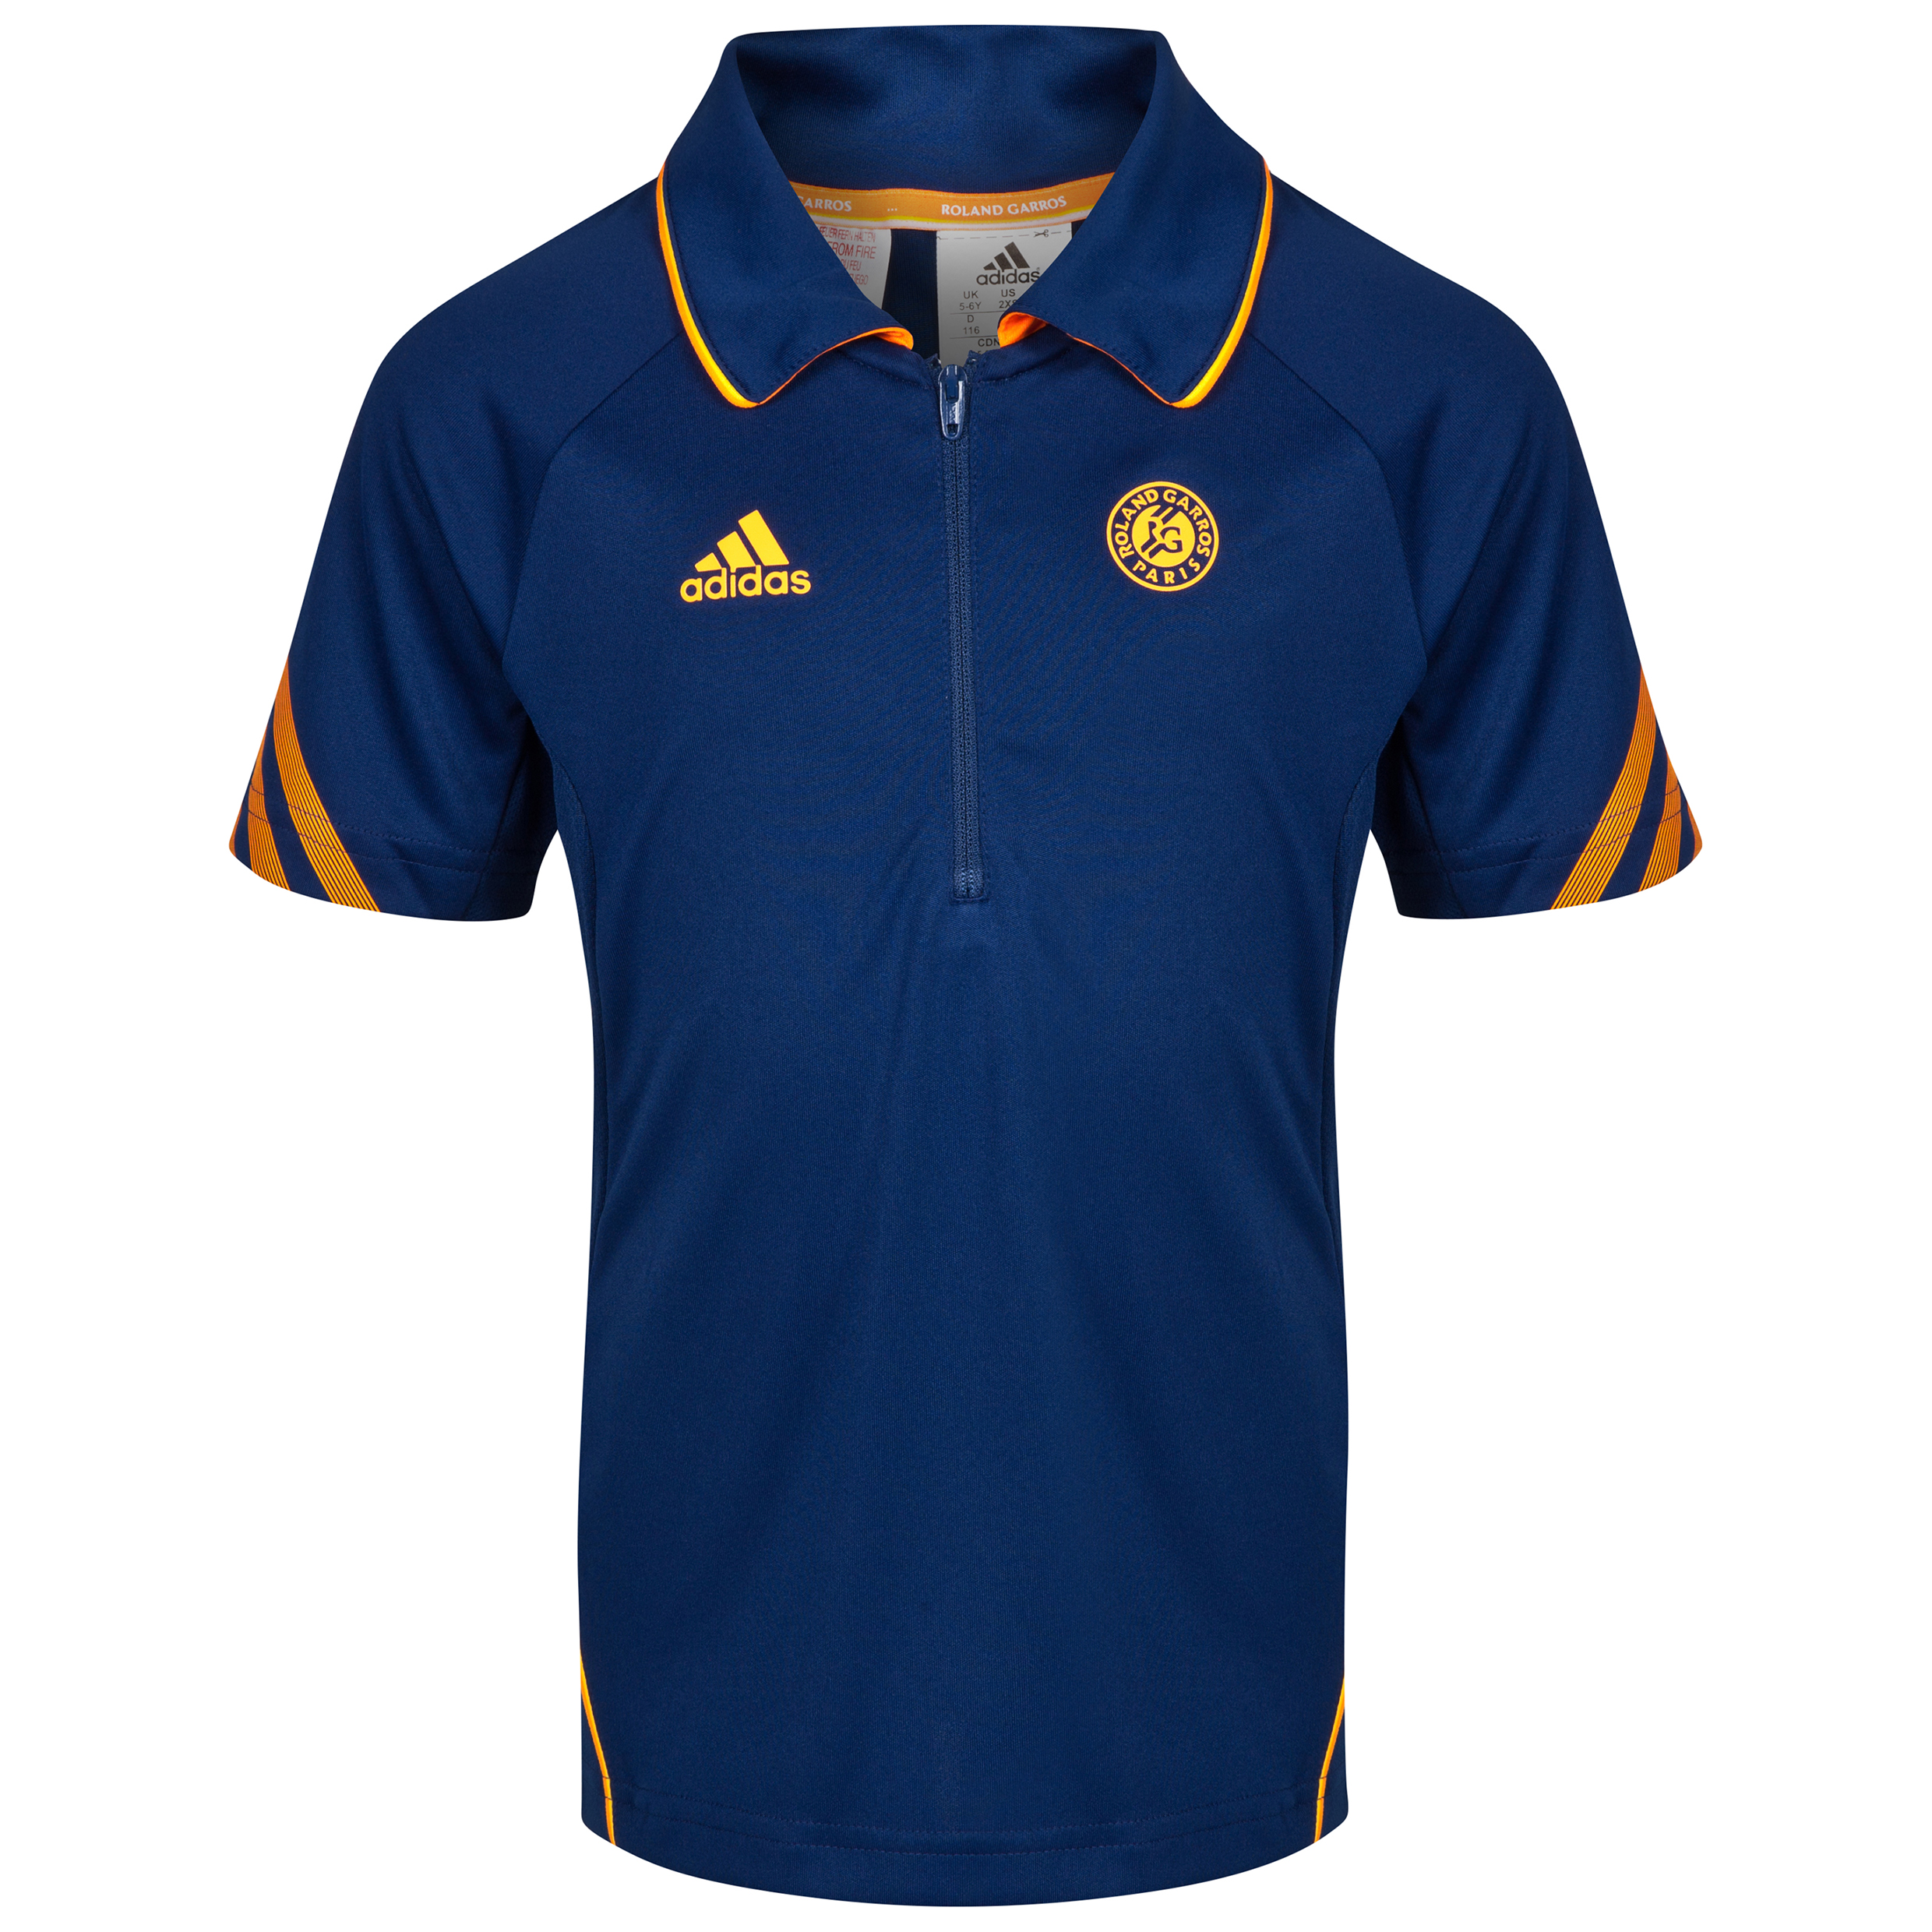 Roland-Garros On Court Polo - Boys Navy